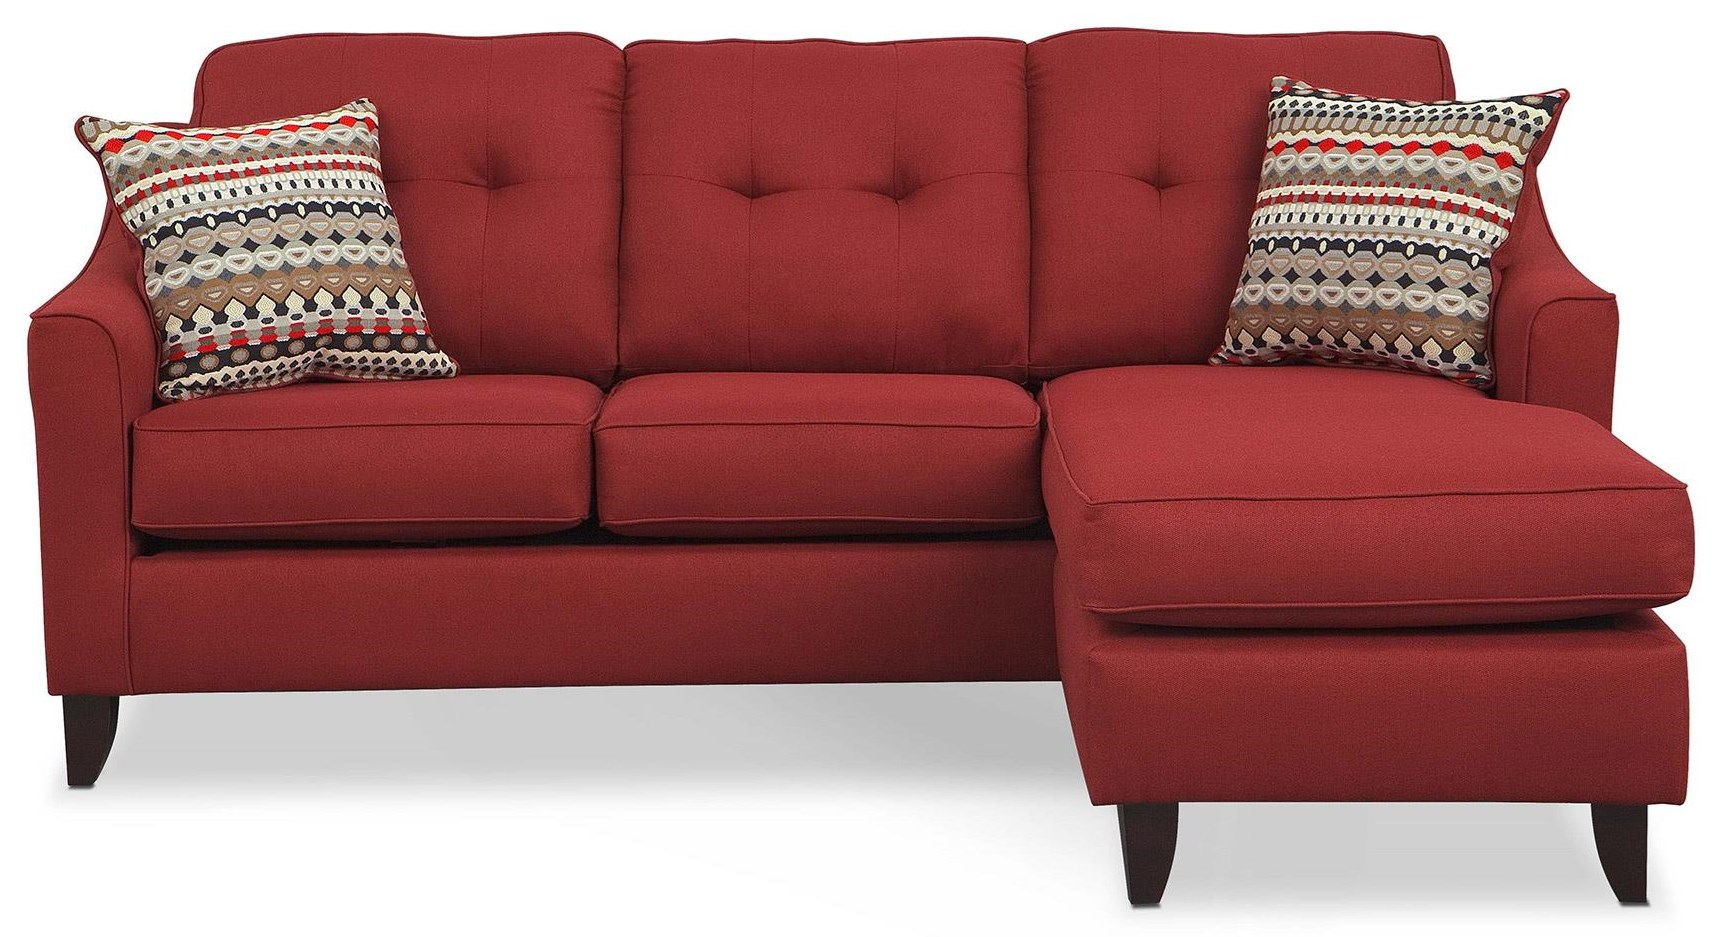 Washington Furniture Stoked Stoked Sofa Chaise - Item Number: 4743STOKED-RED